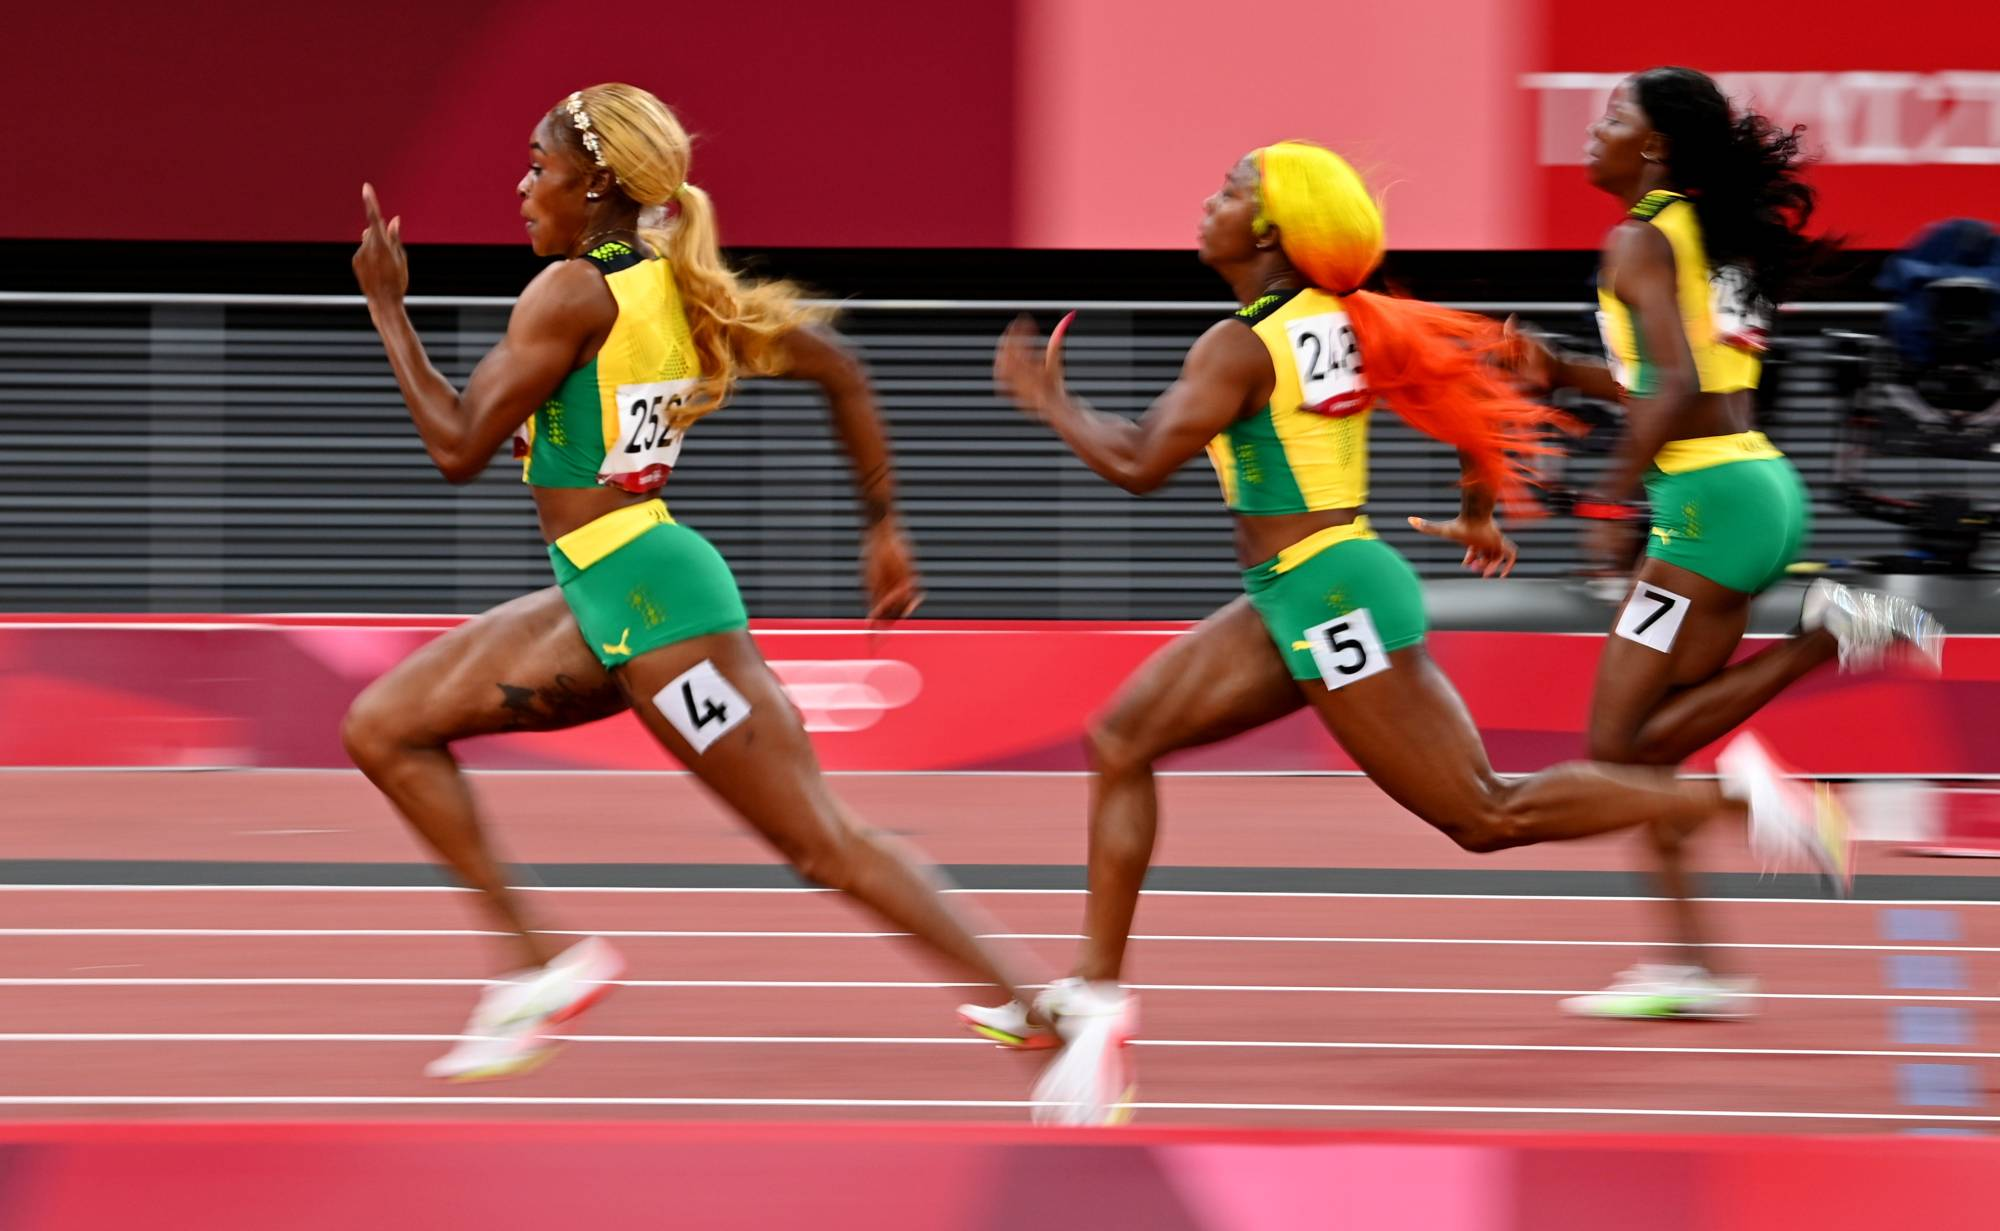 Elaine Thompson-Herah of Jamaica (left) won the women's 100-meter final at the Tokyo Games by shattering Florence Griffith Joyner's record set in 1988, clocking 10.61 seconds. | DYLAN MARTINEZ / REUTERS